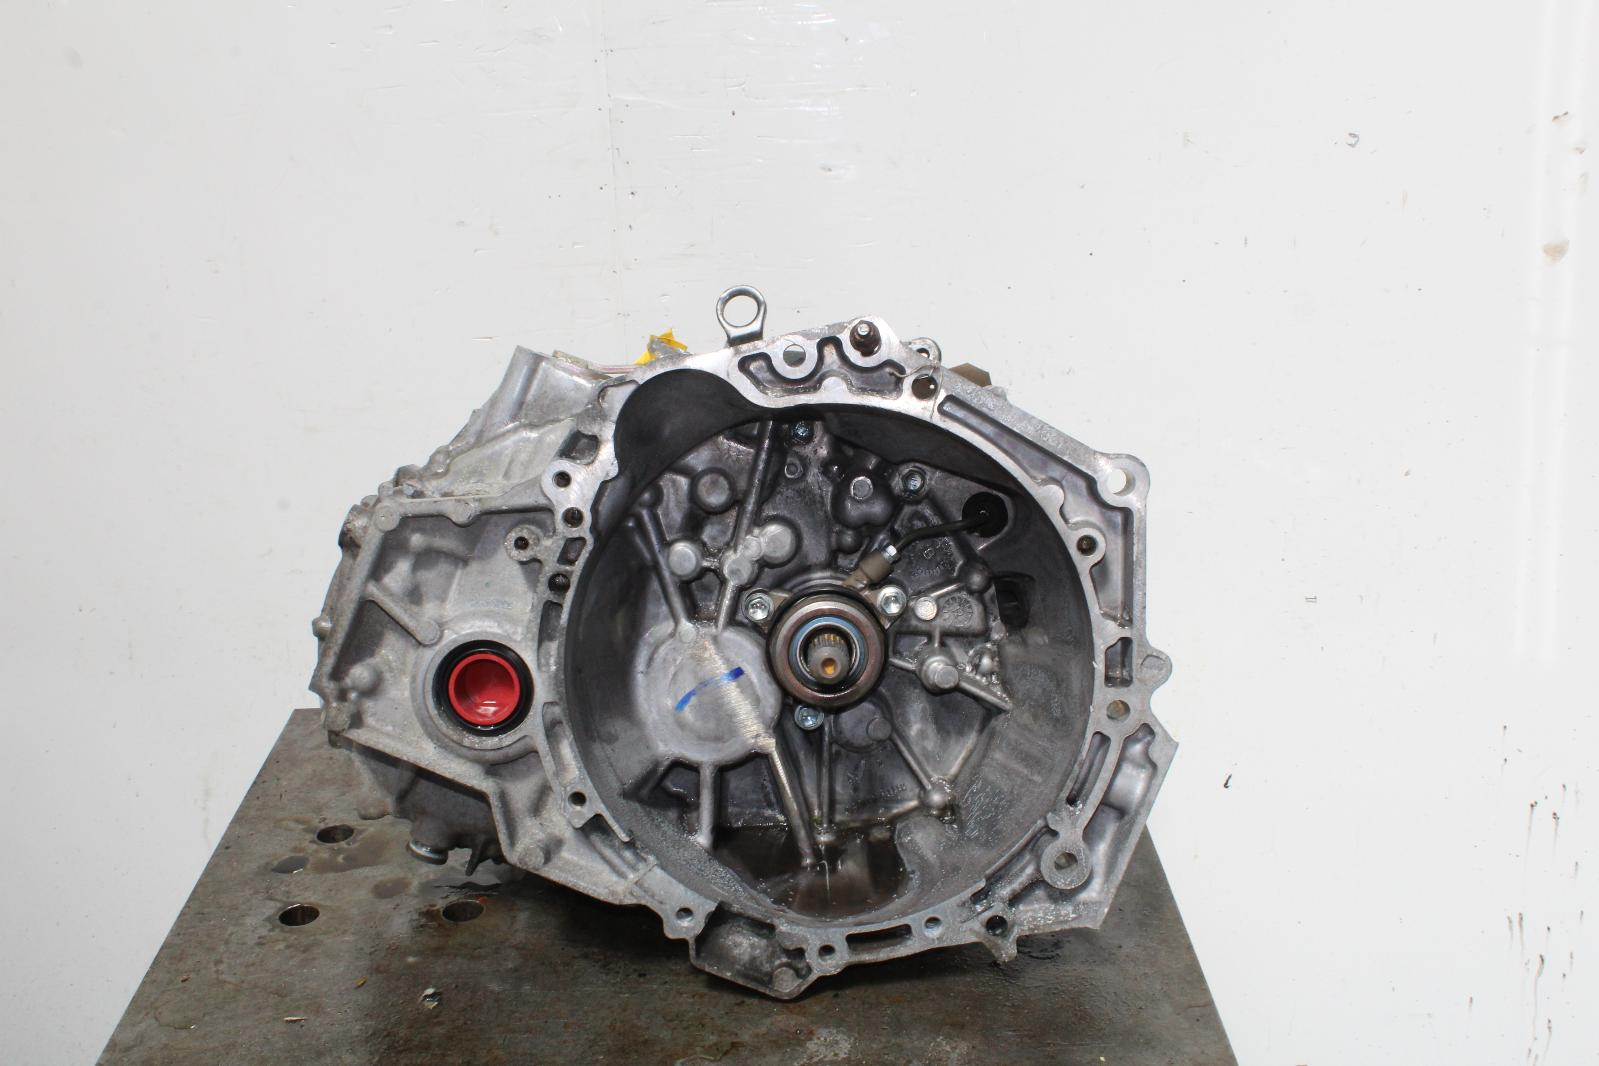 2012 Toyota Yaris 1329cc Petrol 6 Speed Manual Gearbox 30300 0d210 Alternator Wiring Diagram Image Is Loading